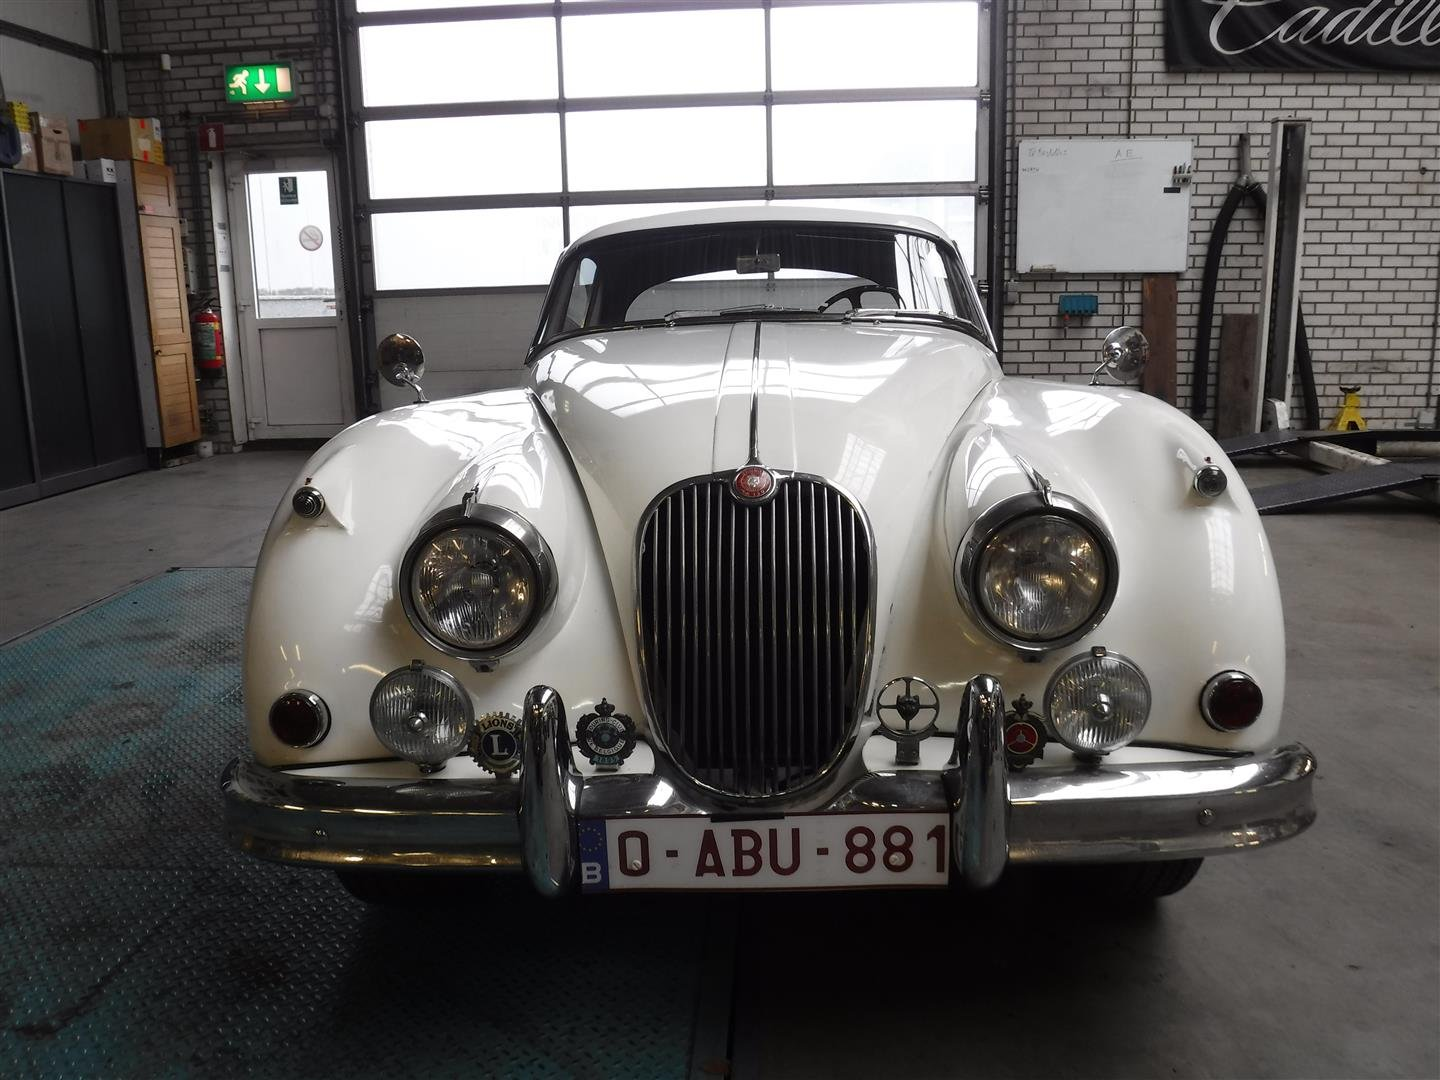 1958 Jaguar XK 150 coupe '58 For Sale (picture 2 of 6)